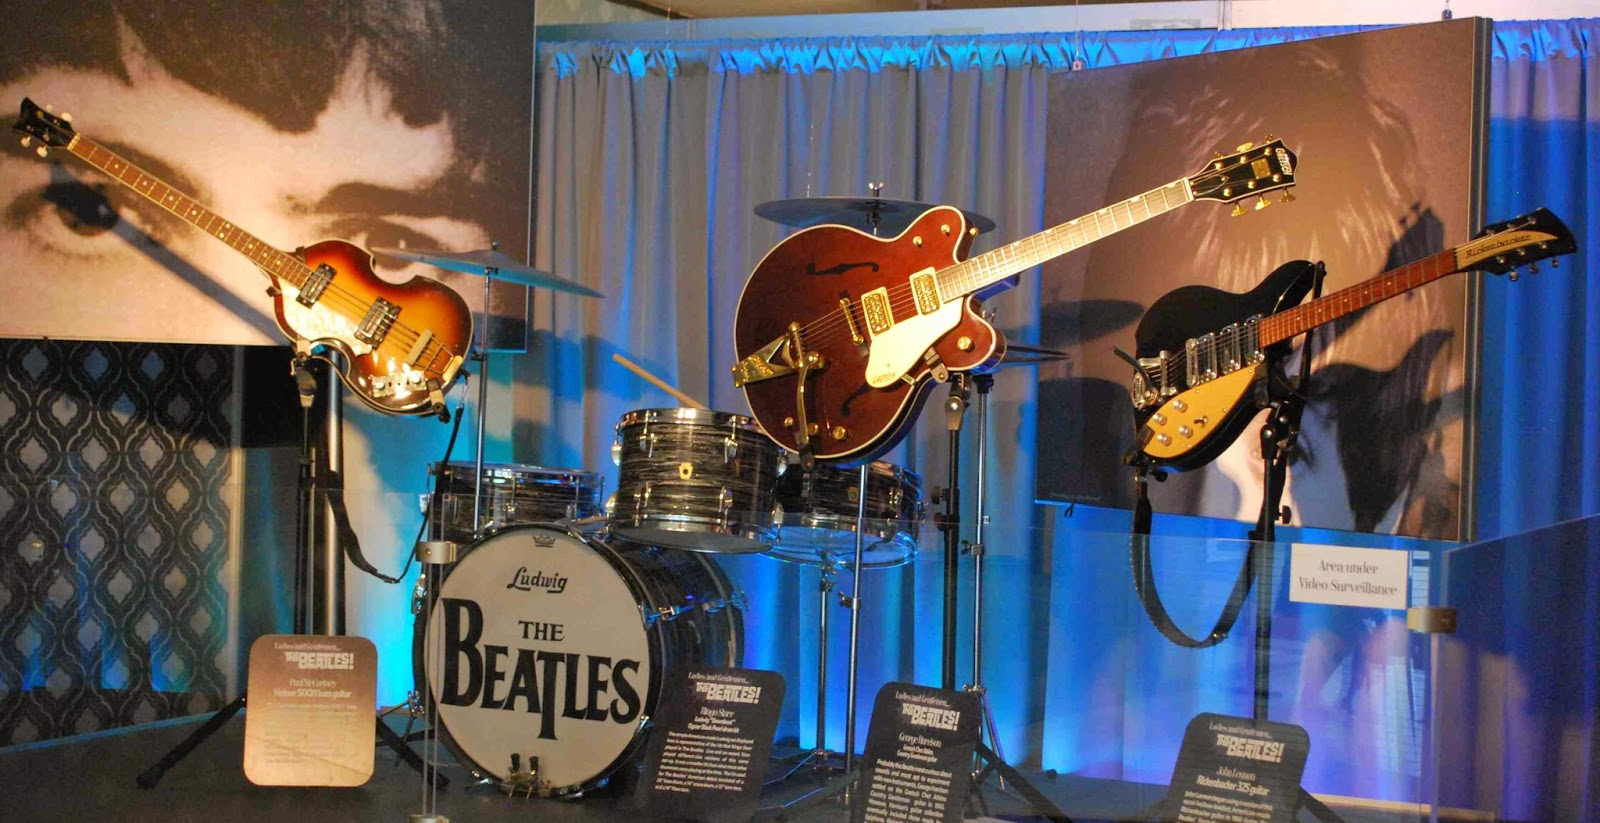 the beatles influence in pop culture The most influential beatles songs a look at the most enduring songs by the fab four by chris rowen  or could it speak to the music's influence on the broader spectrum of culture certainly in the case of the beatles, all of the above are applicable  protest songs were already part of popular culture but were associated mostly with.